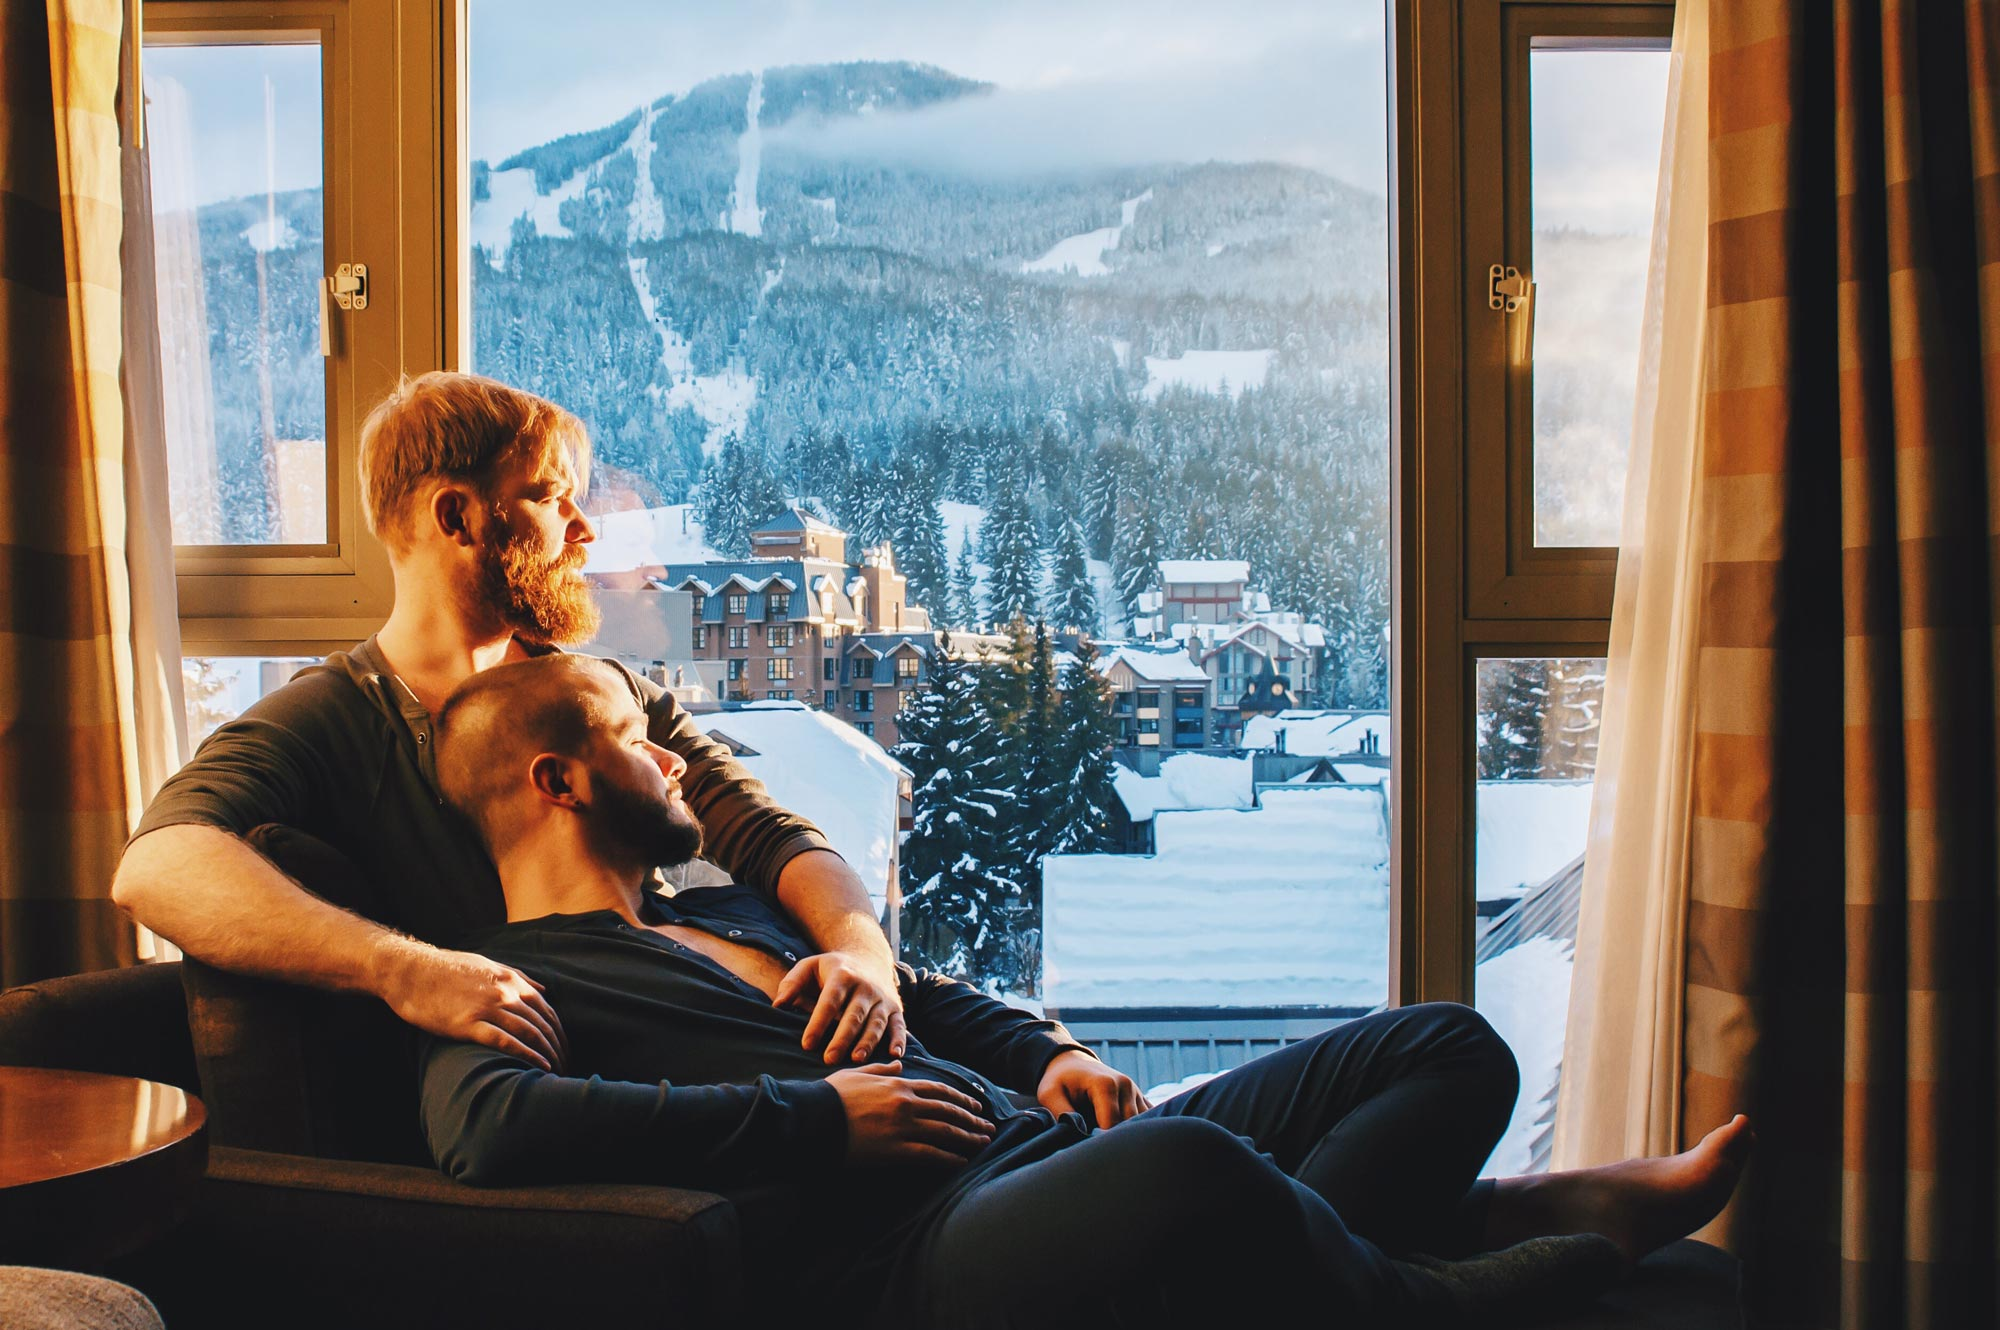 Whistler Pride Gay Skiwoche Whistler Pride Gay Skiwoche Couple of Men - Winter Trip to Canada for Whistler Pride and Ski Festival 2019 © Coupleofmen.com